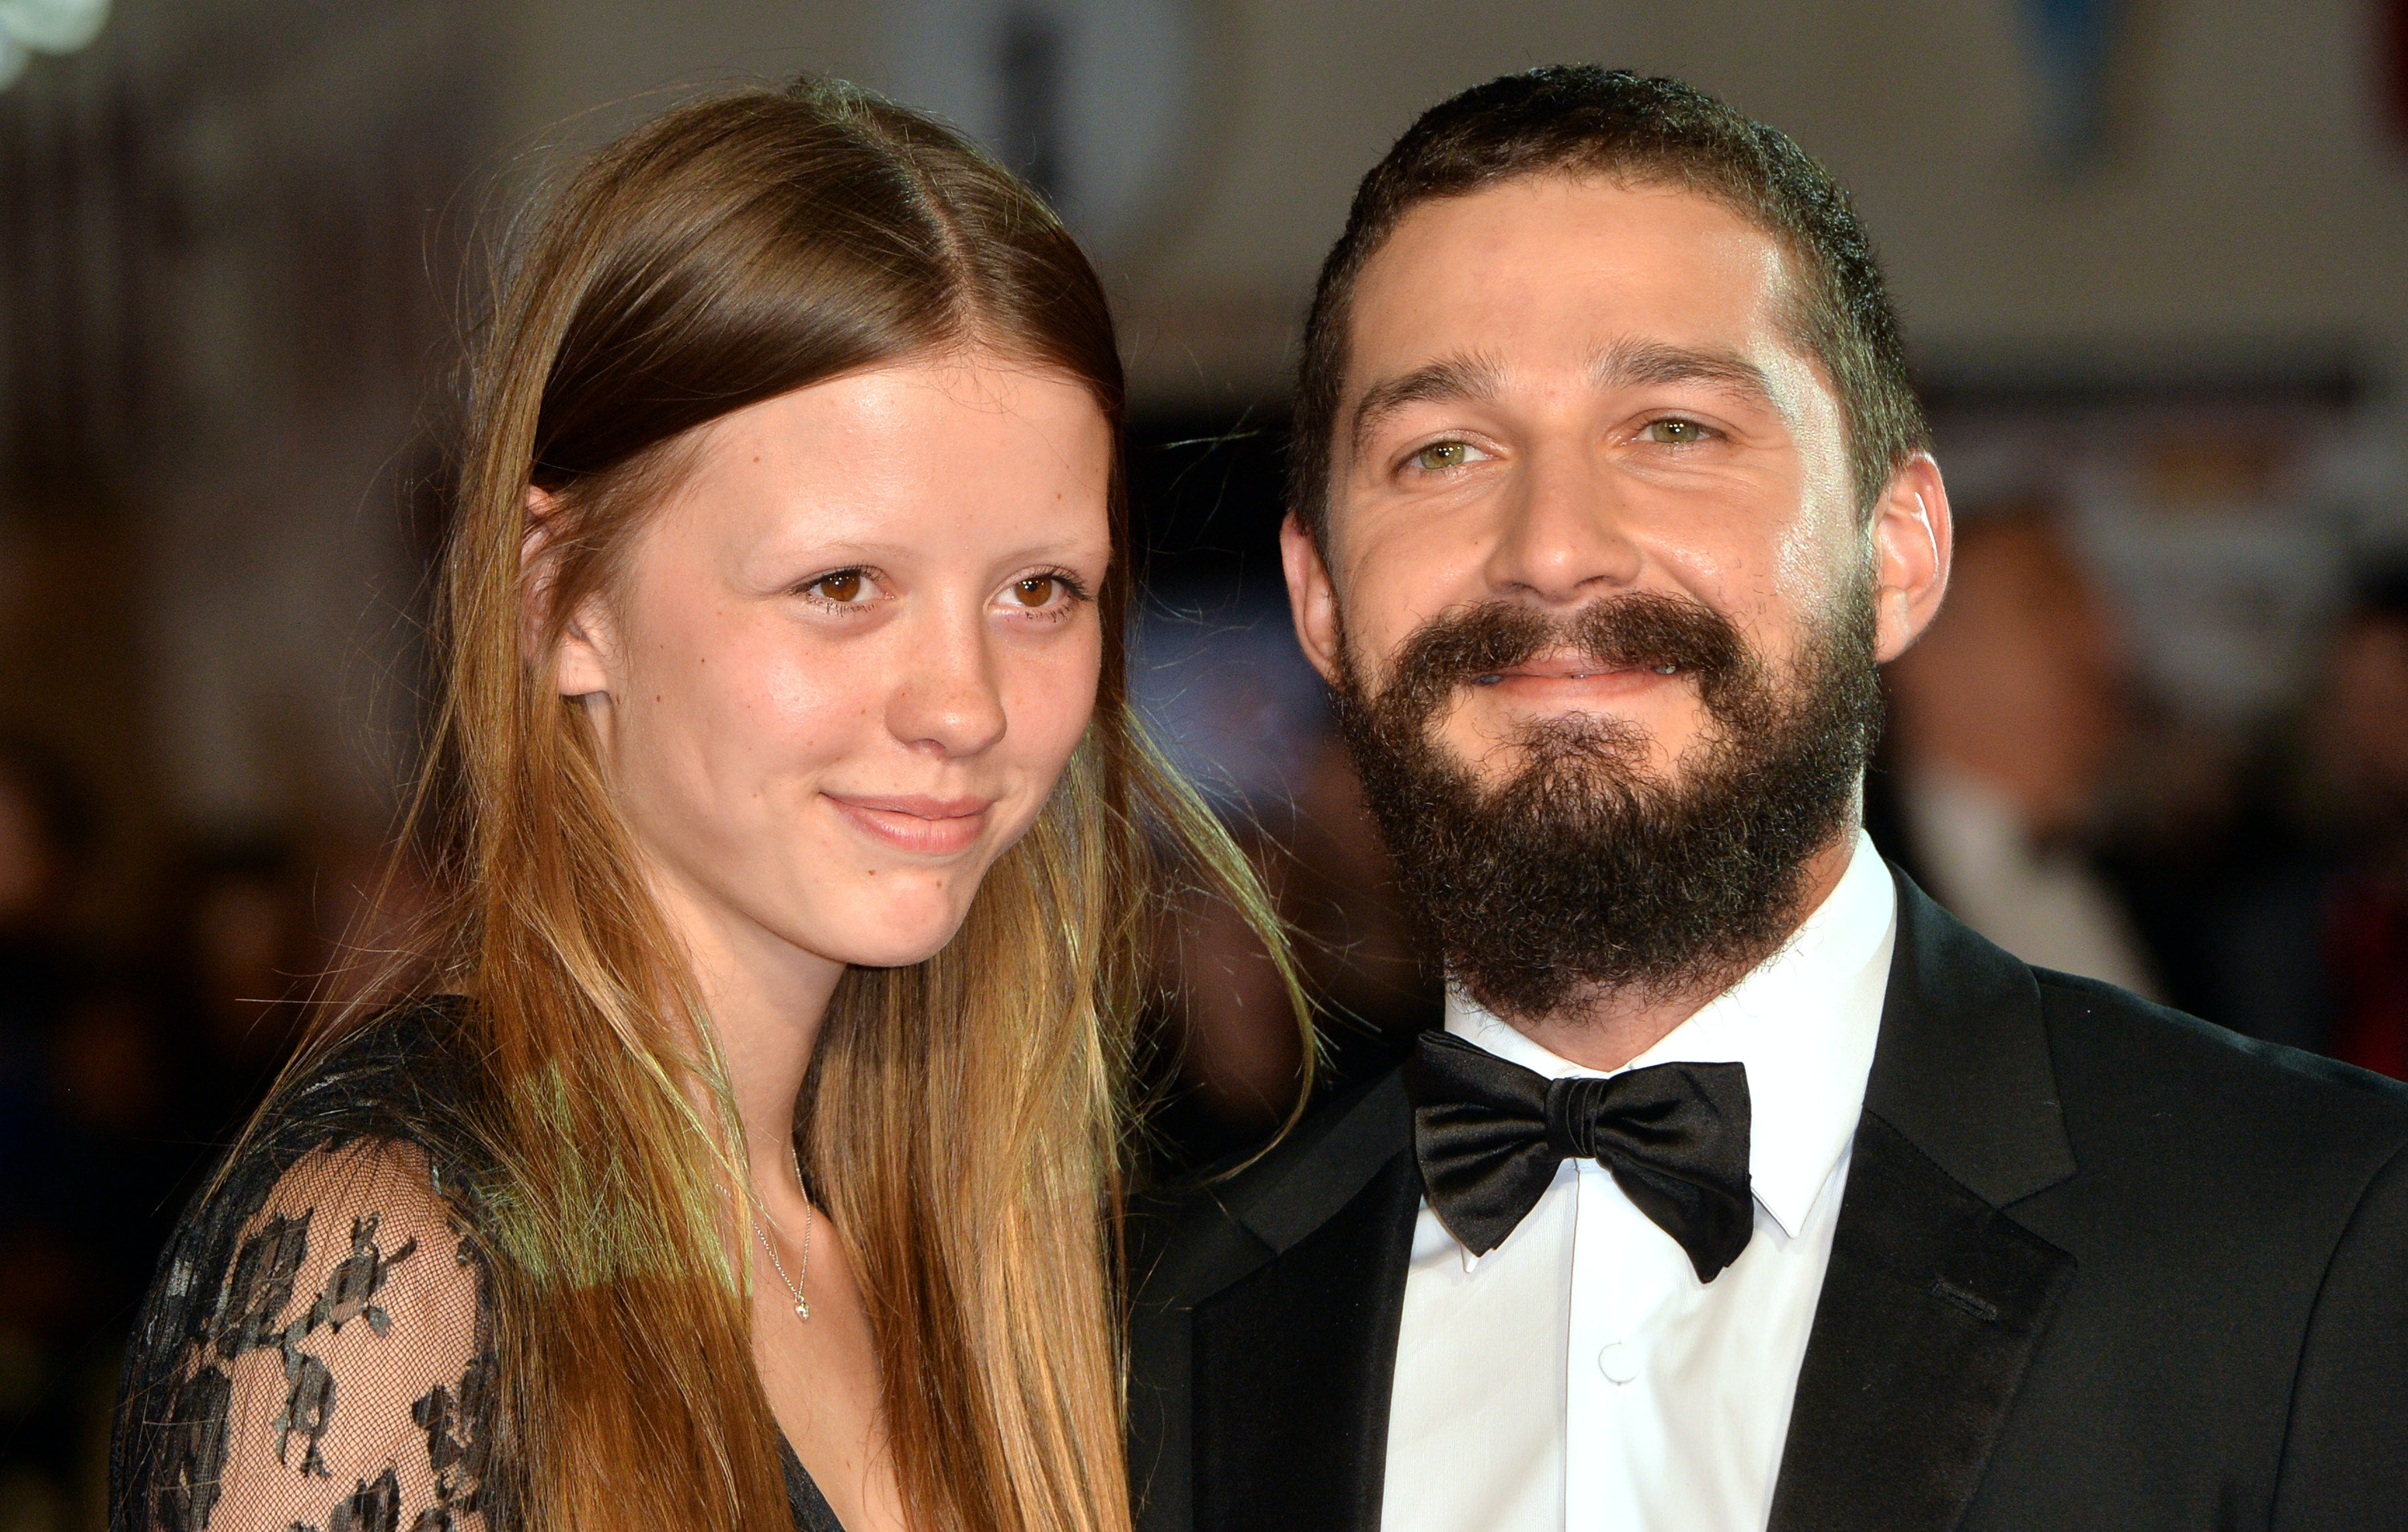 Shia LaBeouf's Las Vegas Wedding Available for Viewing